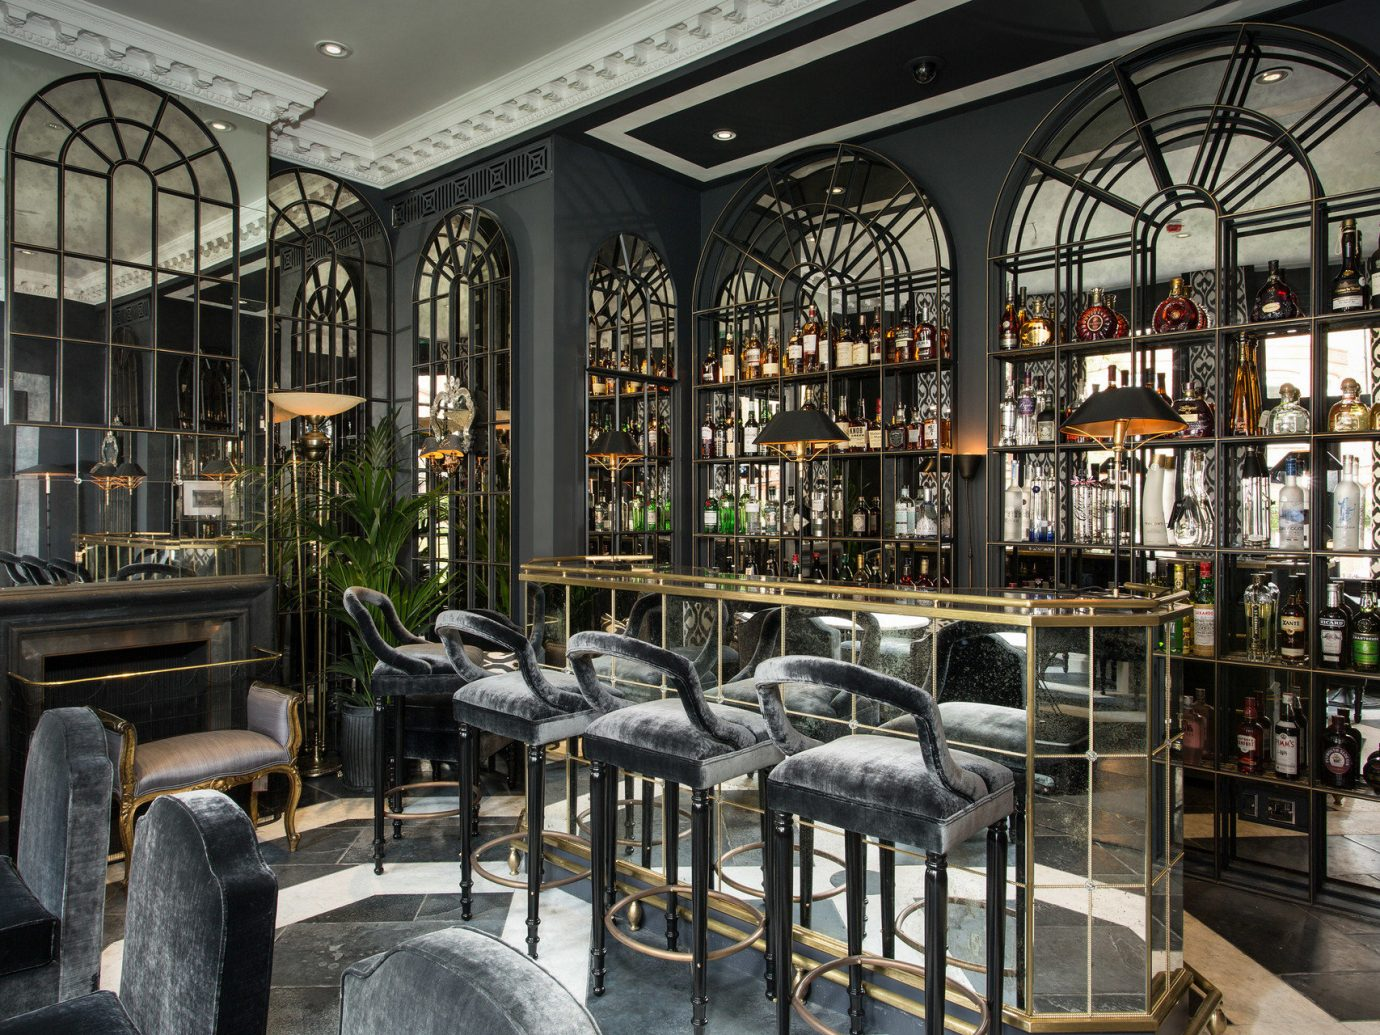 Boutique Hotels Hotels restaurant Bar interior design estate Design furniture